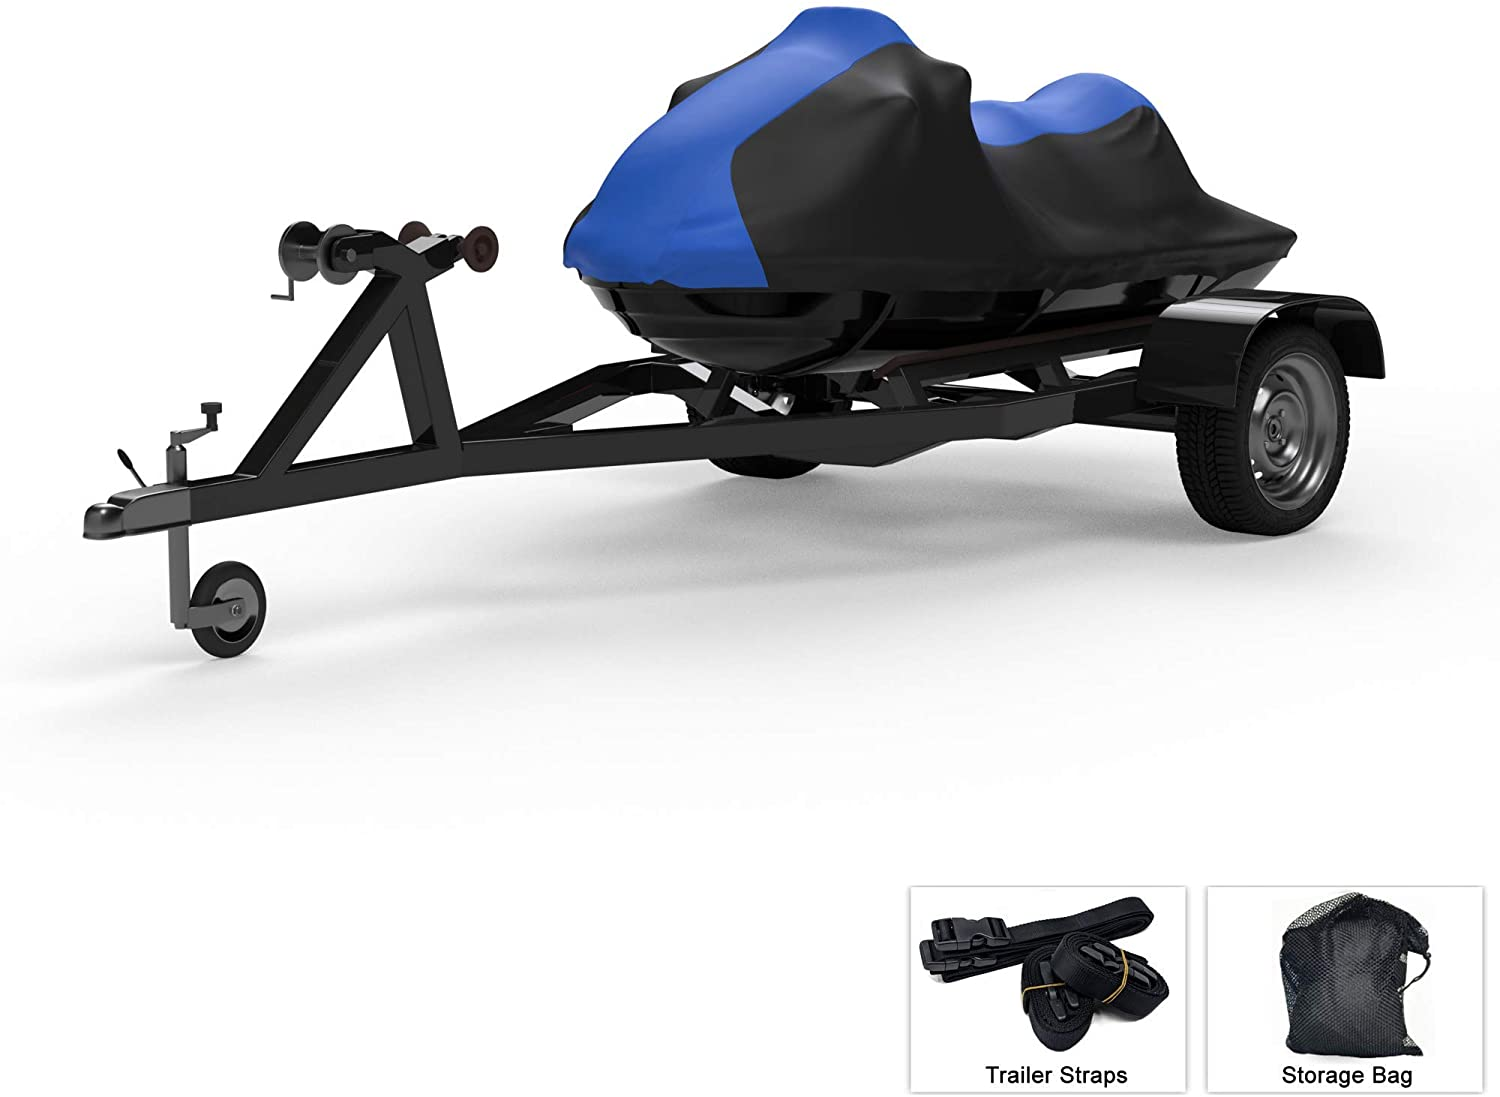 Weatherproof Jet Ski Covers for SEA DOO GTX Di 2002-2003 - Multiple Color Options - All Weather - Trailerable - Protects from Rain, Sun, UV Rays, and More! Includes Trailer Straps and Storage Bag